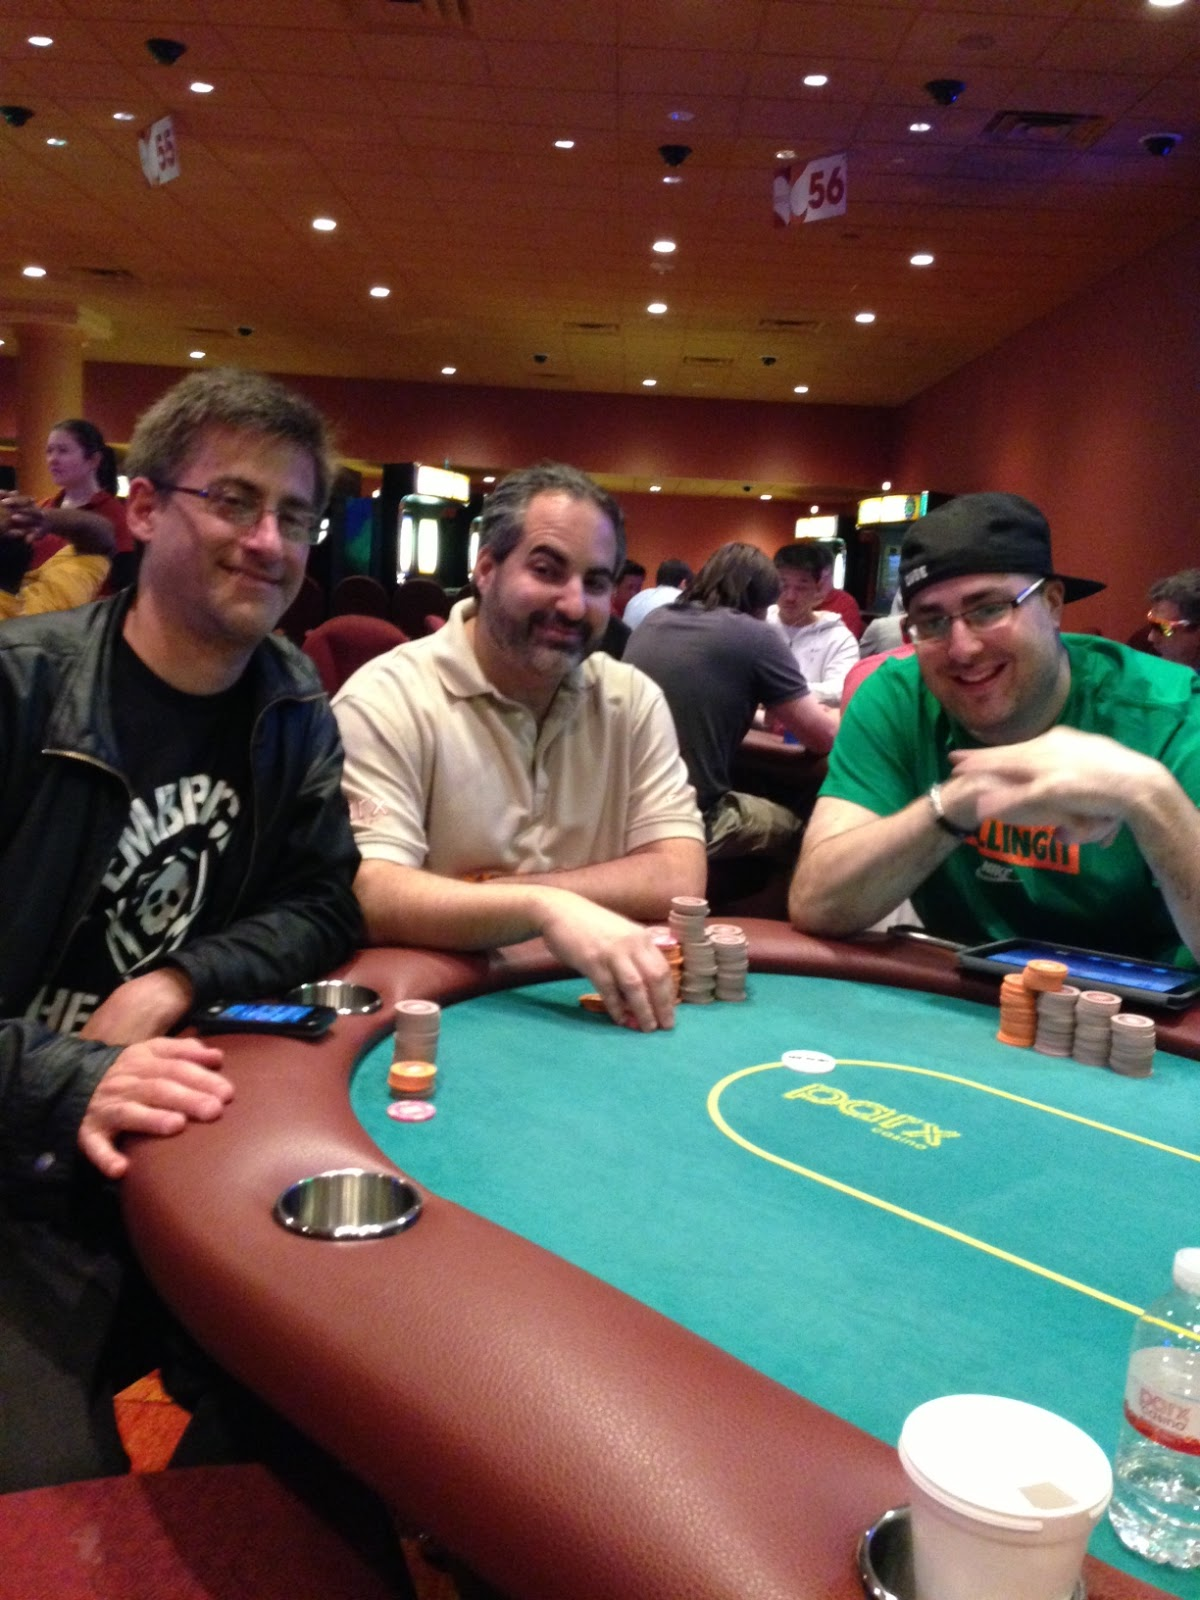 Parxbigstaxii big stax 1500 day 2 table of death updates departures for Parx poker room live game report